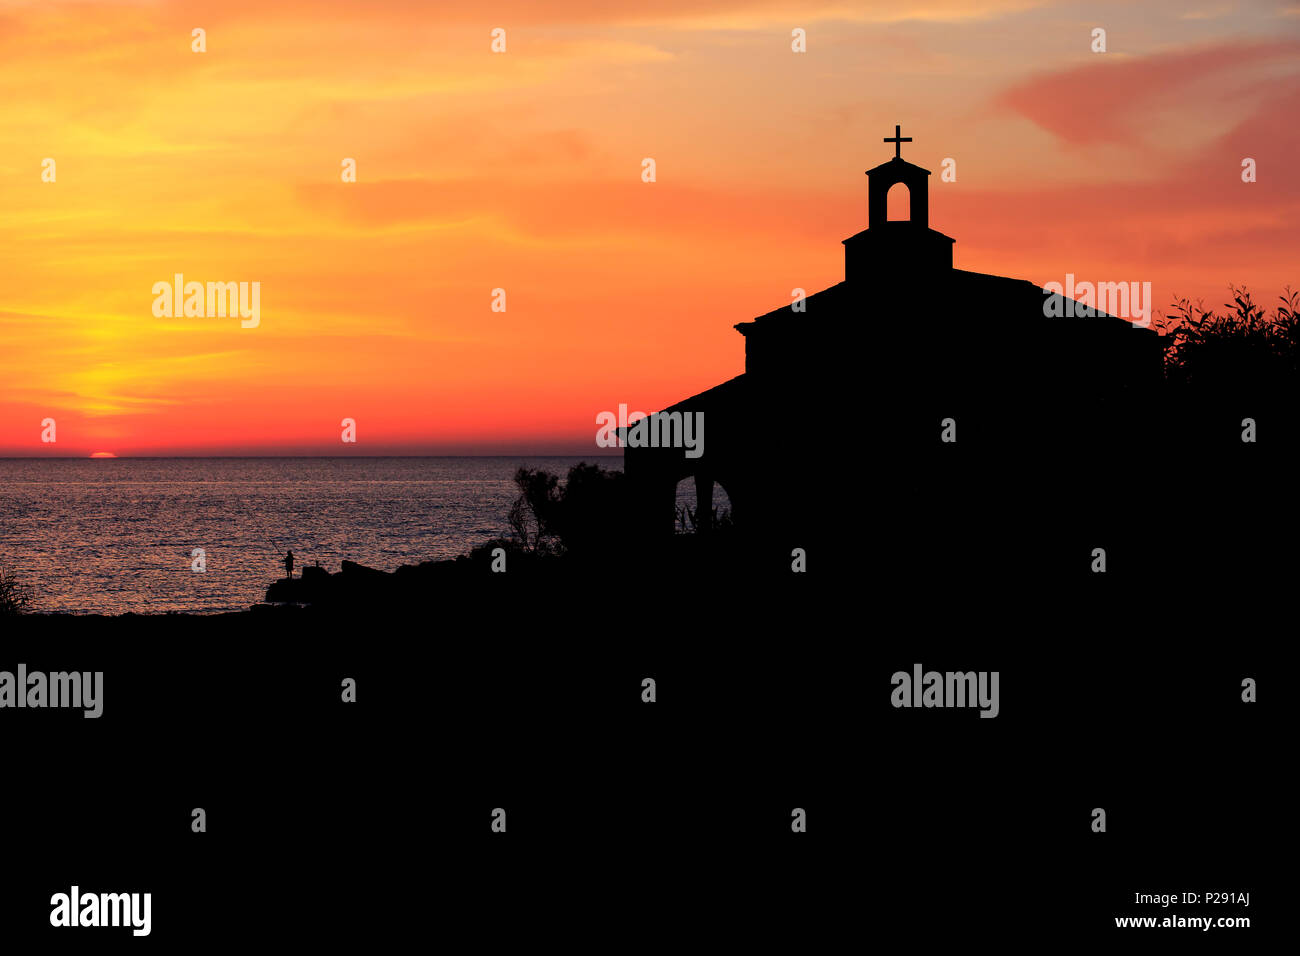 The Eastern Orthodox Chapel of Saint Andreas Paramount at sunrise in Protaras, Cyprus - Stock Image